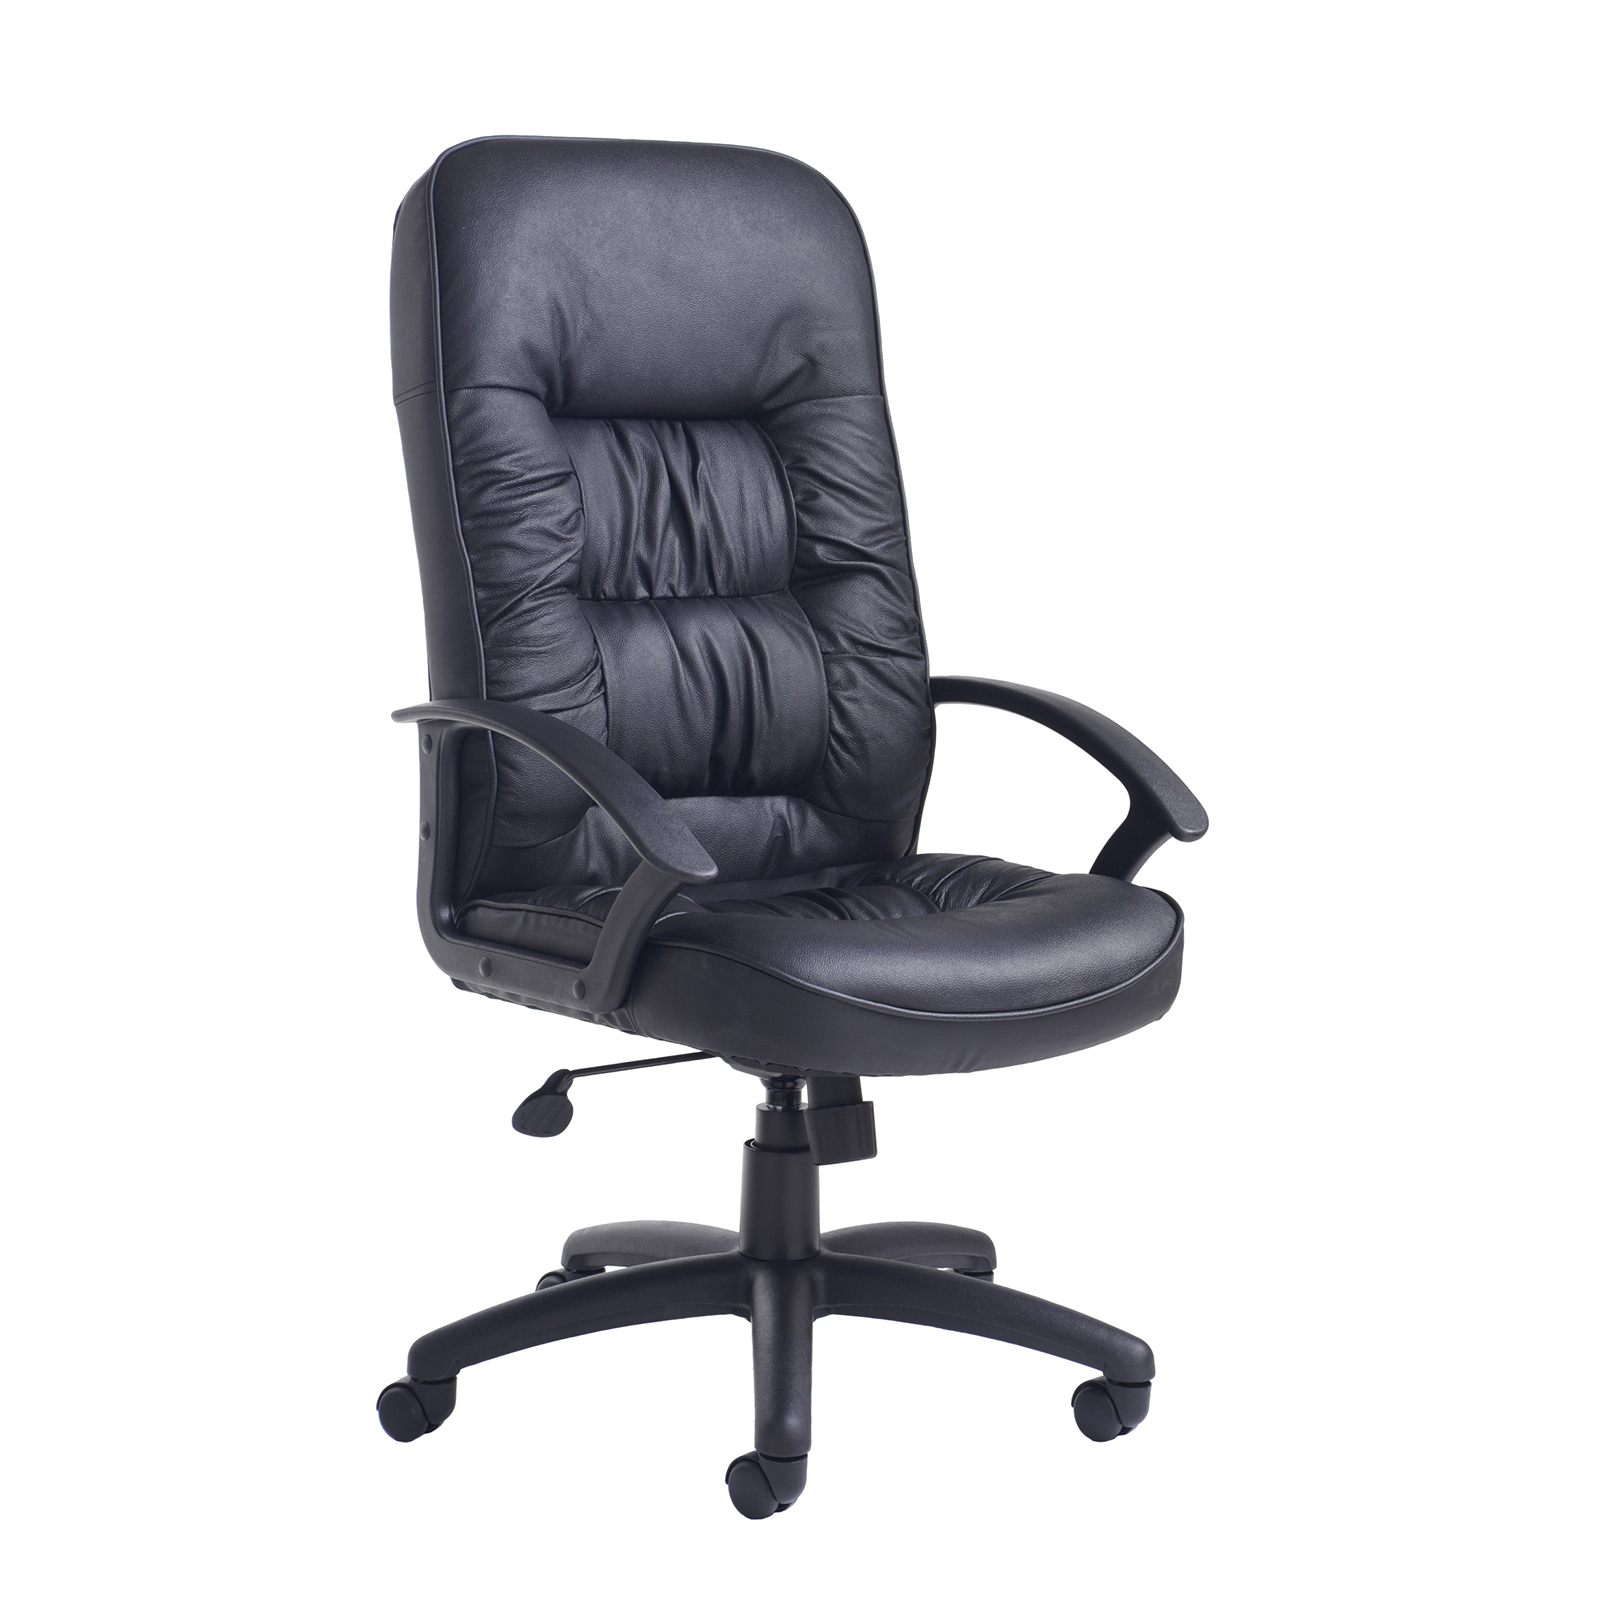 Executive Chairs King high back managers chair - black leather faced